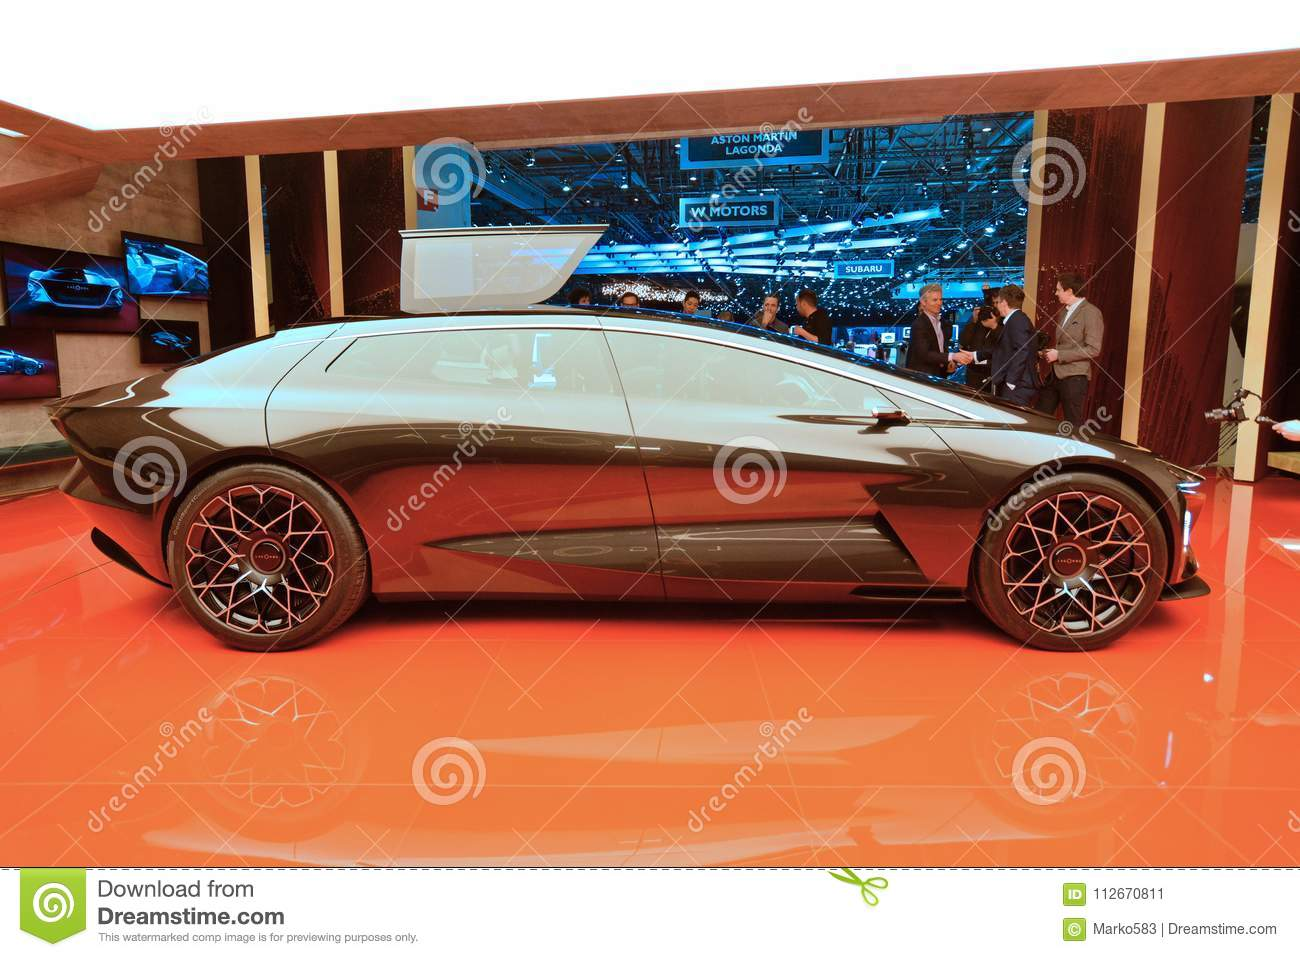 88th Geneva International Motor Show 2018 Aston Martin Lagonda Vision Concept Editorial Photo Image Of Times Feasibility 112670811